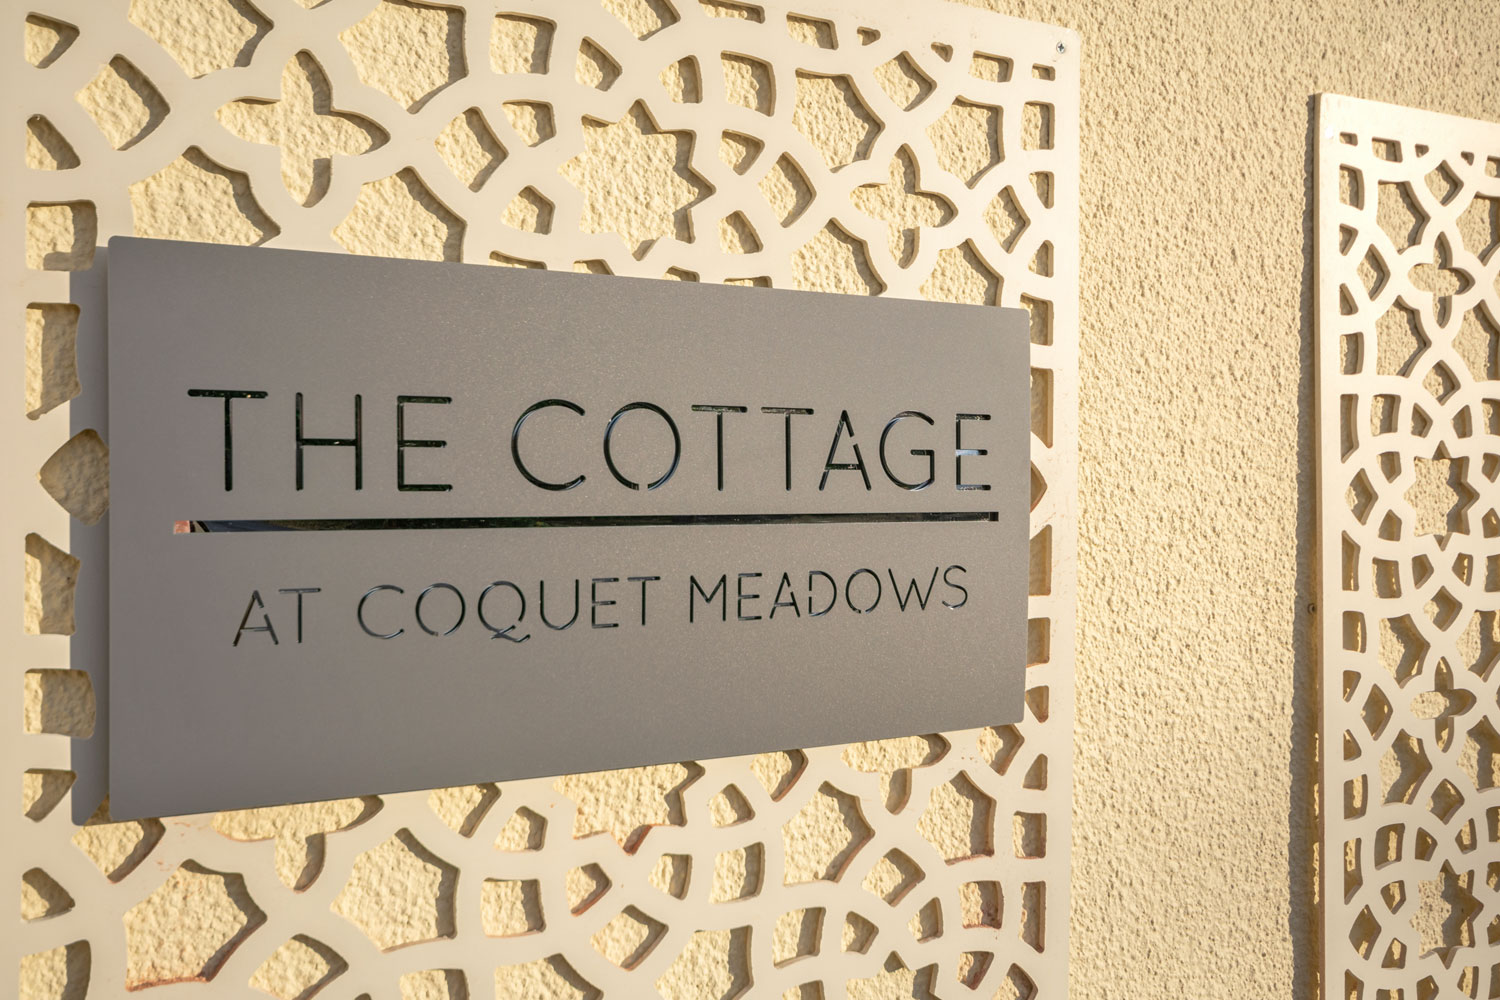 Exterior Sign at the Cottage at Coquet Meadows